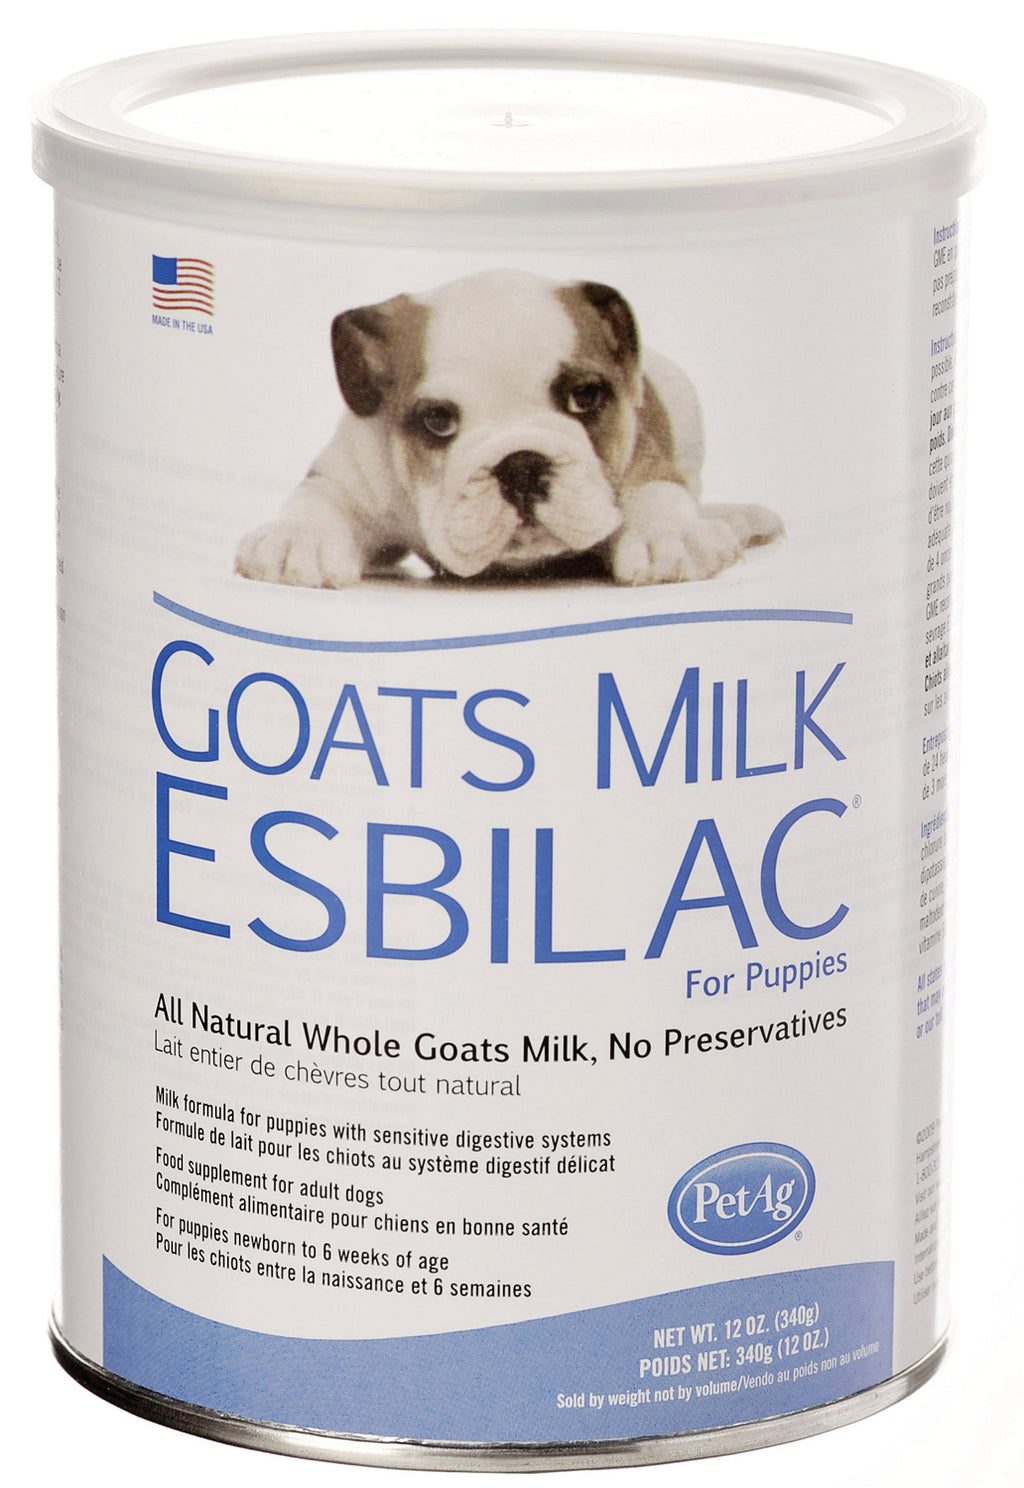 Goats Milk Esbilac Powder